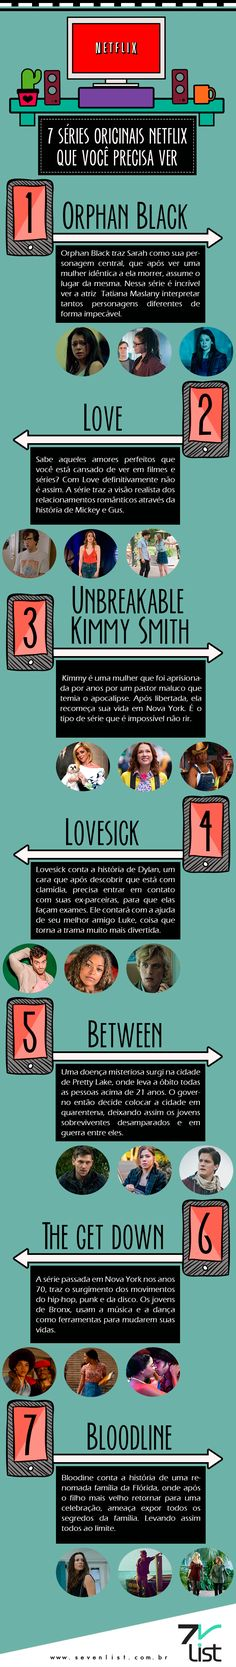 #SevenList #CabideColorido #Art #Design #Infográfico #Netflix #Séries #Film #Tv #OrphanBlack #Love #TheGetDown #Lovesick #Bloodline